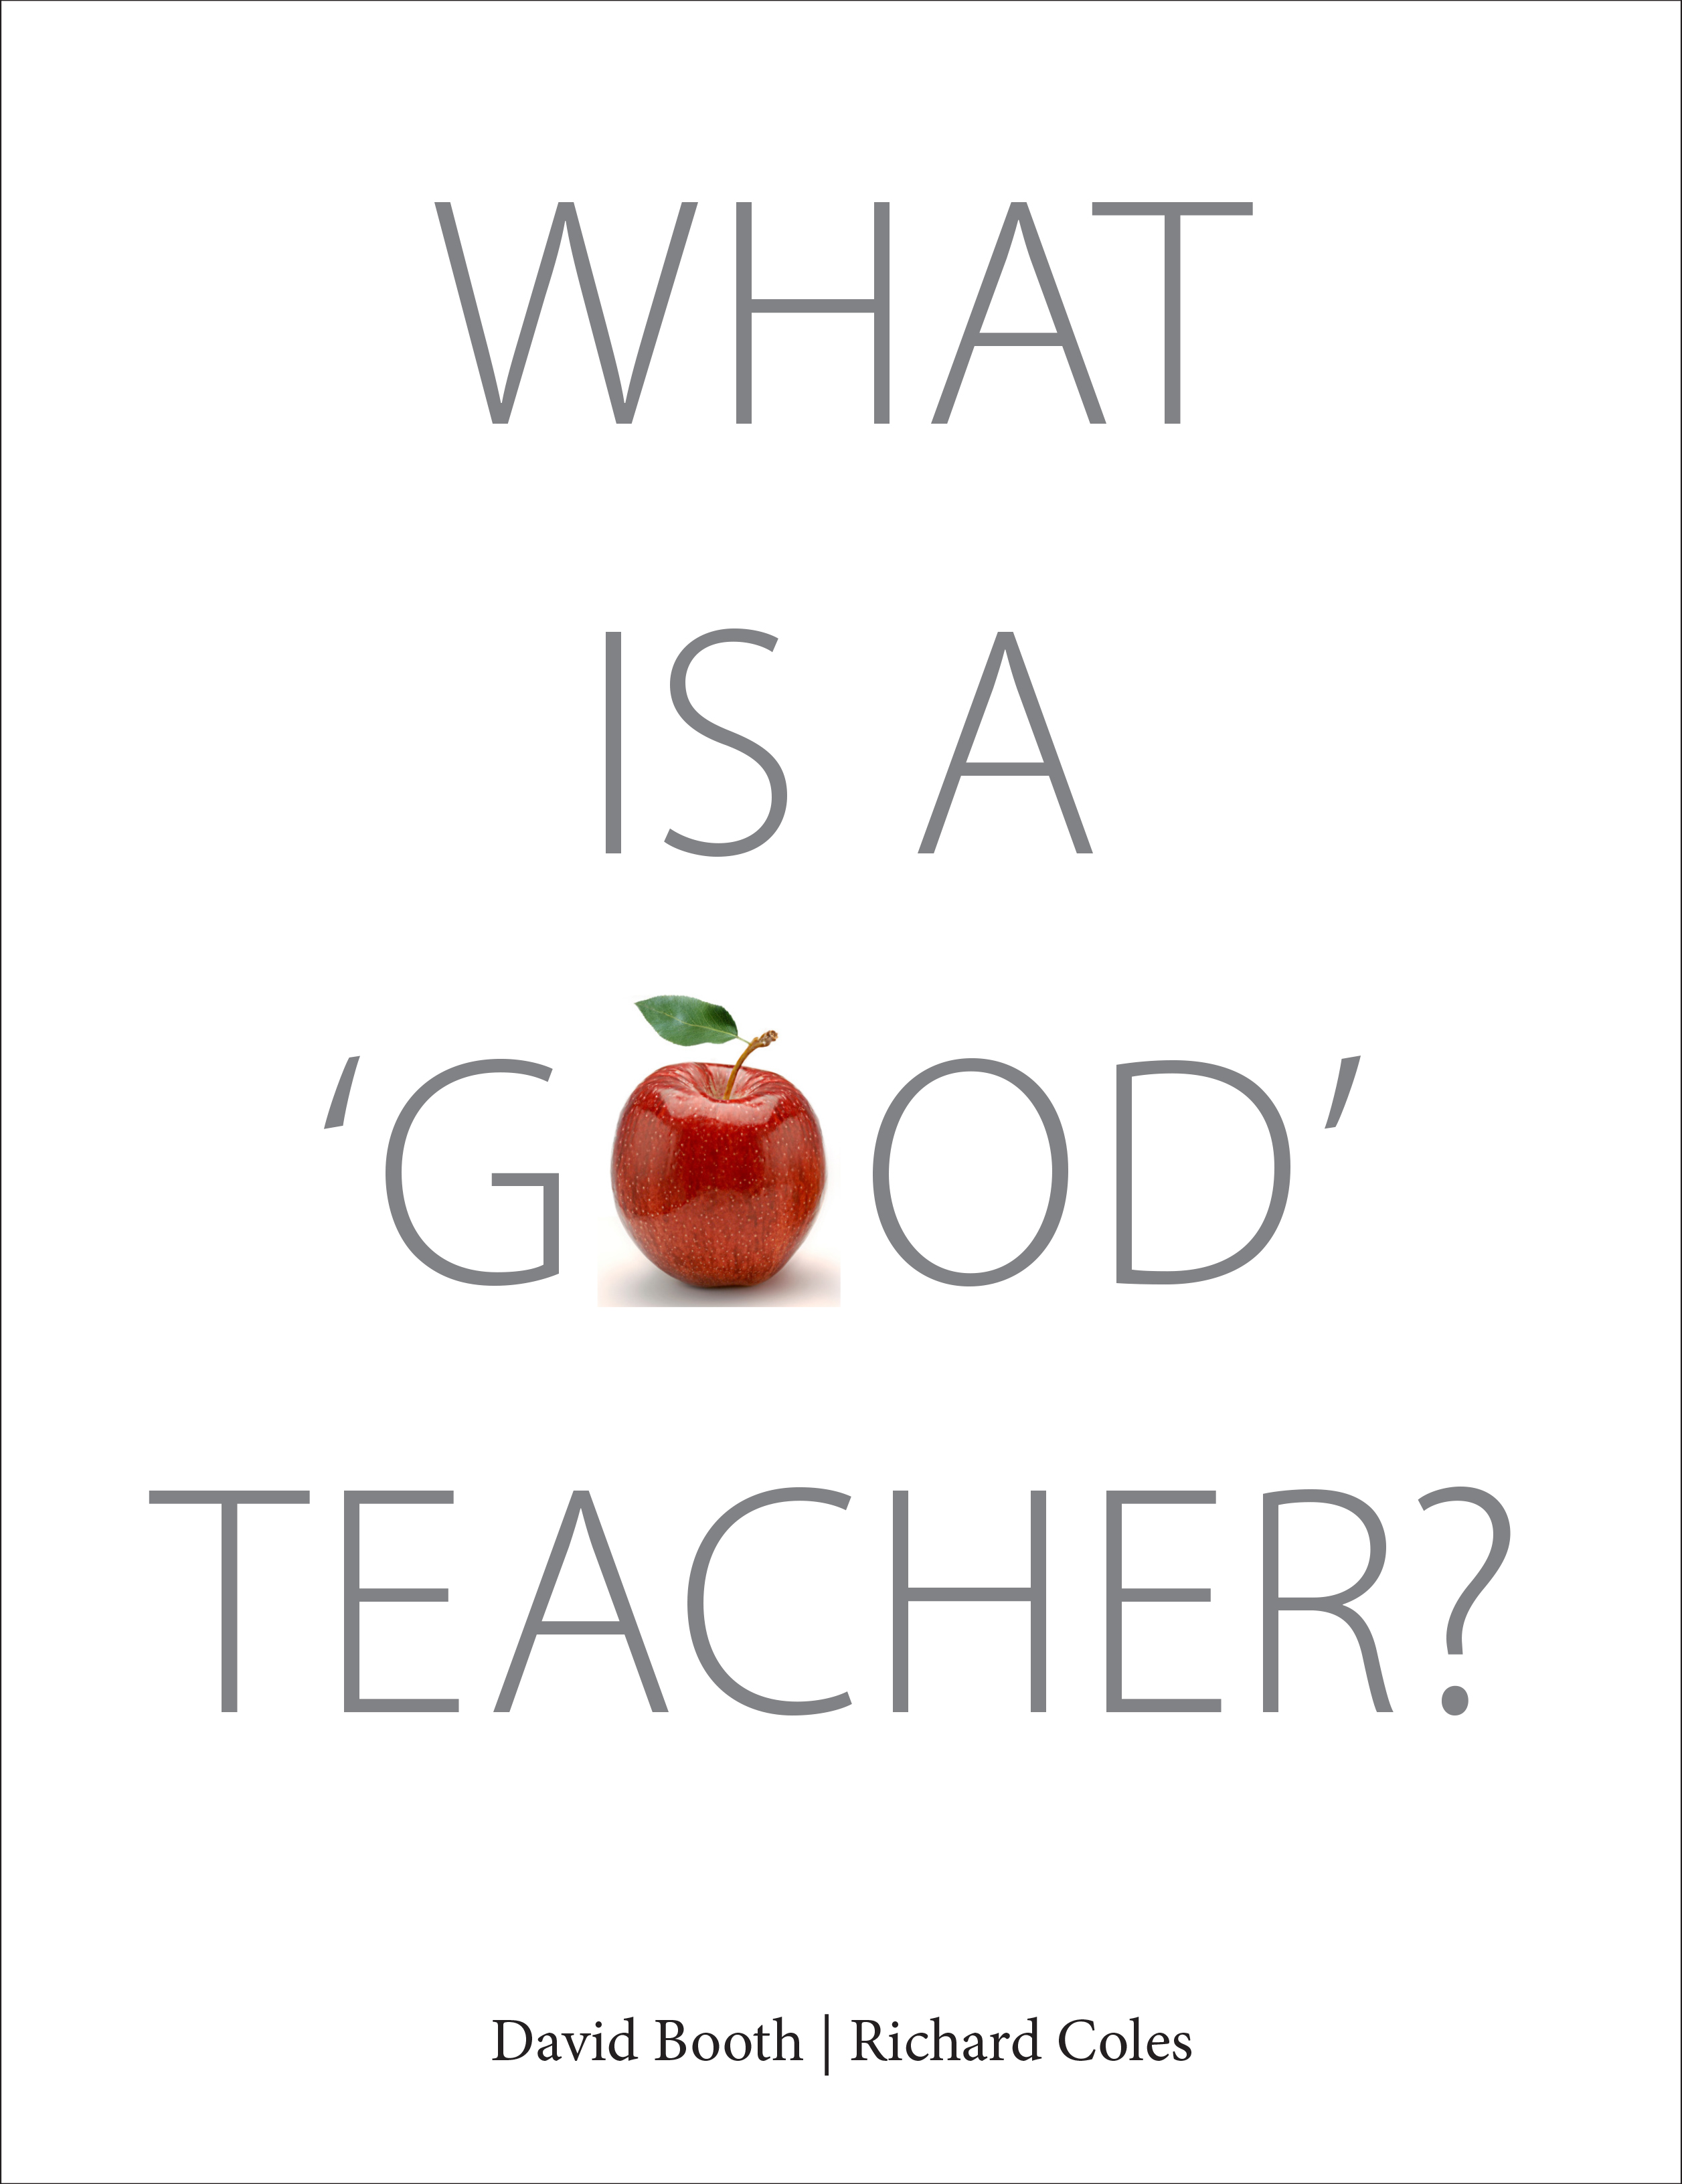 Image result for what is a good teacher david booth richard coles